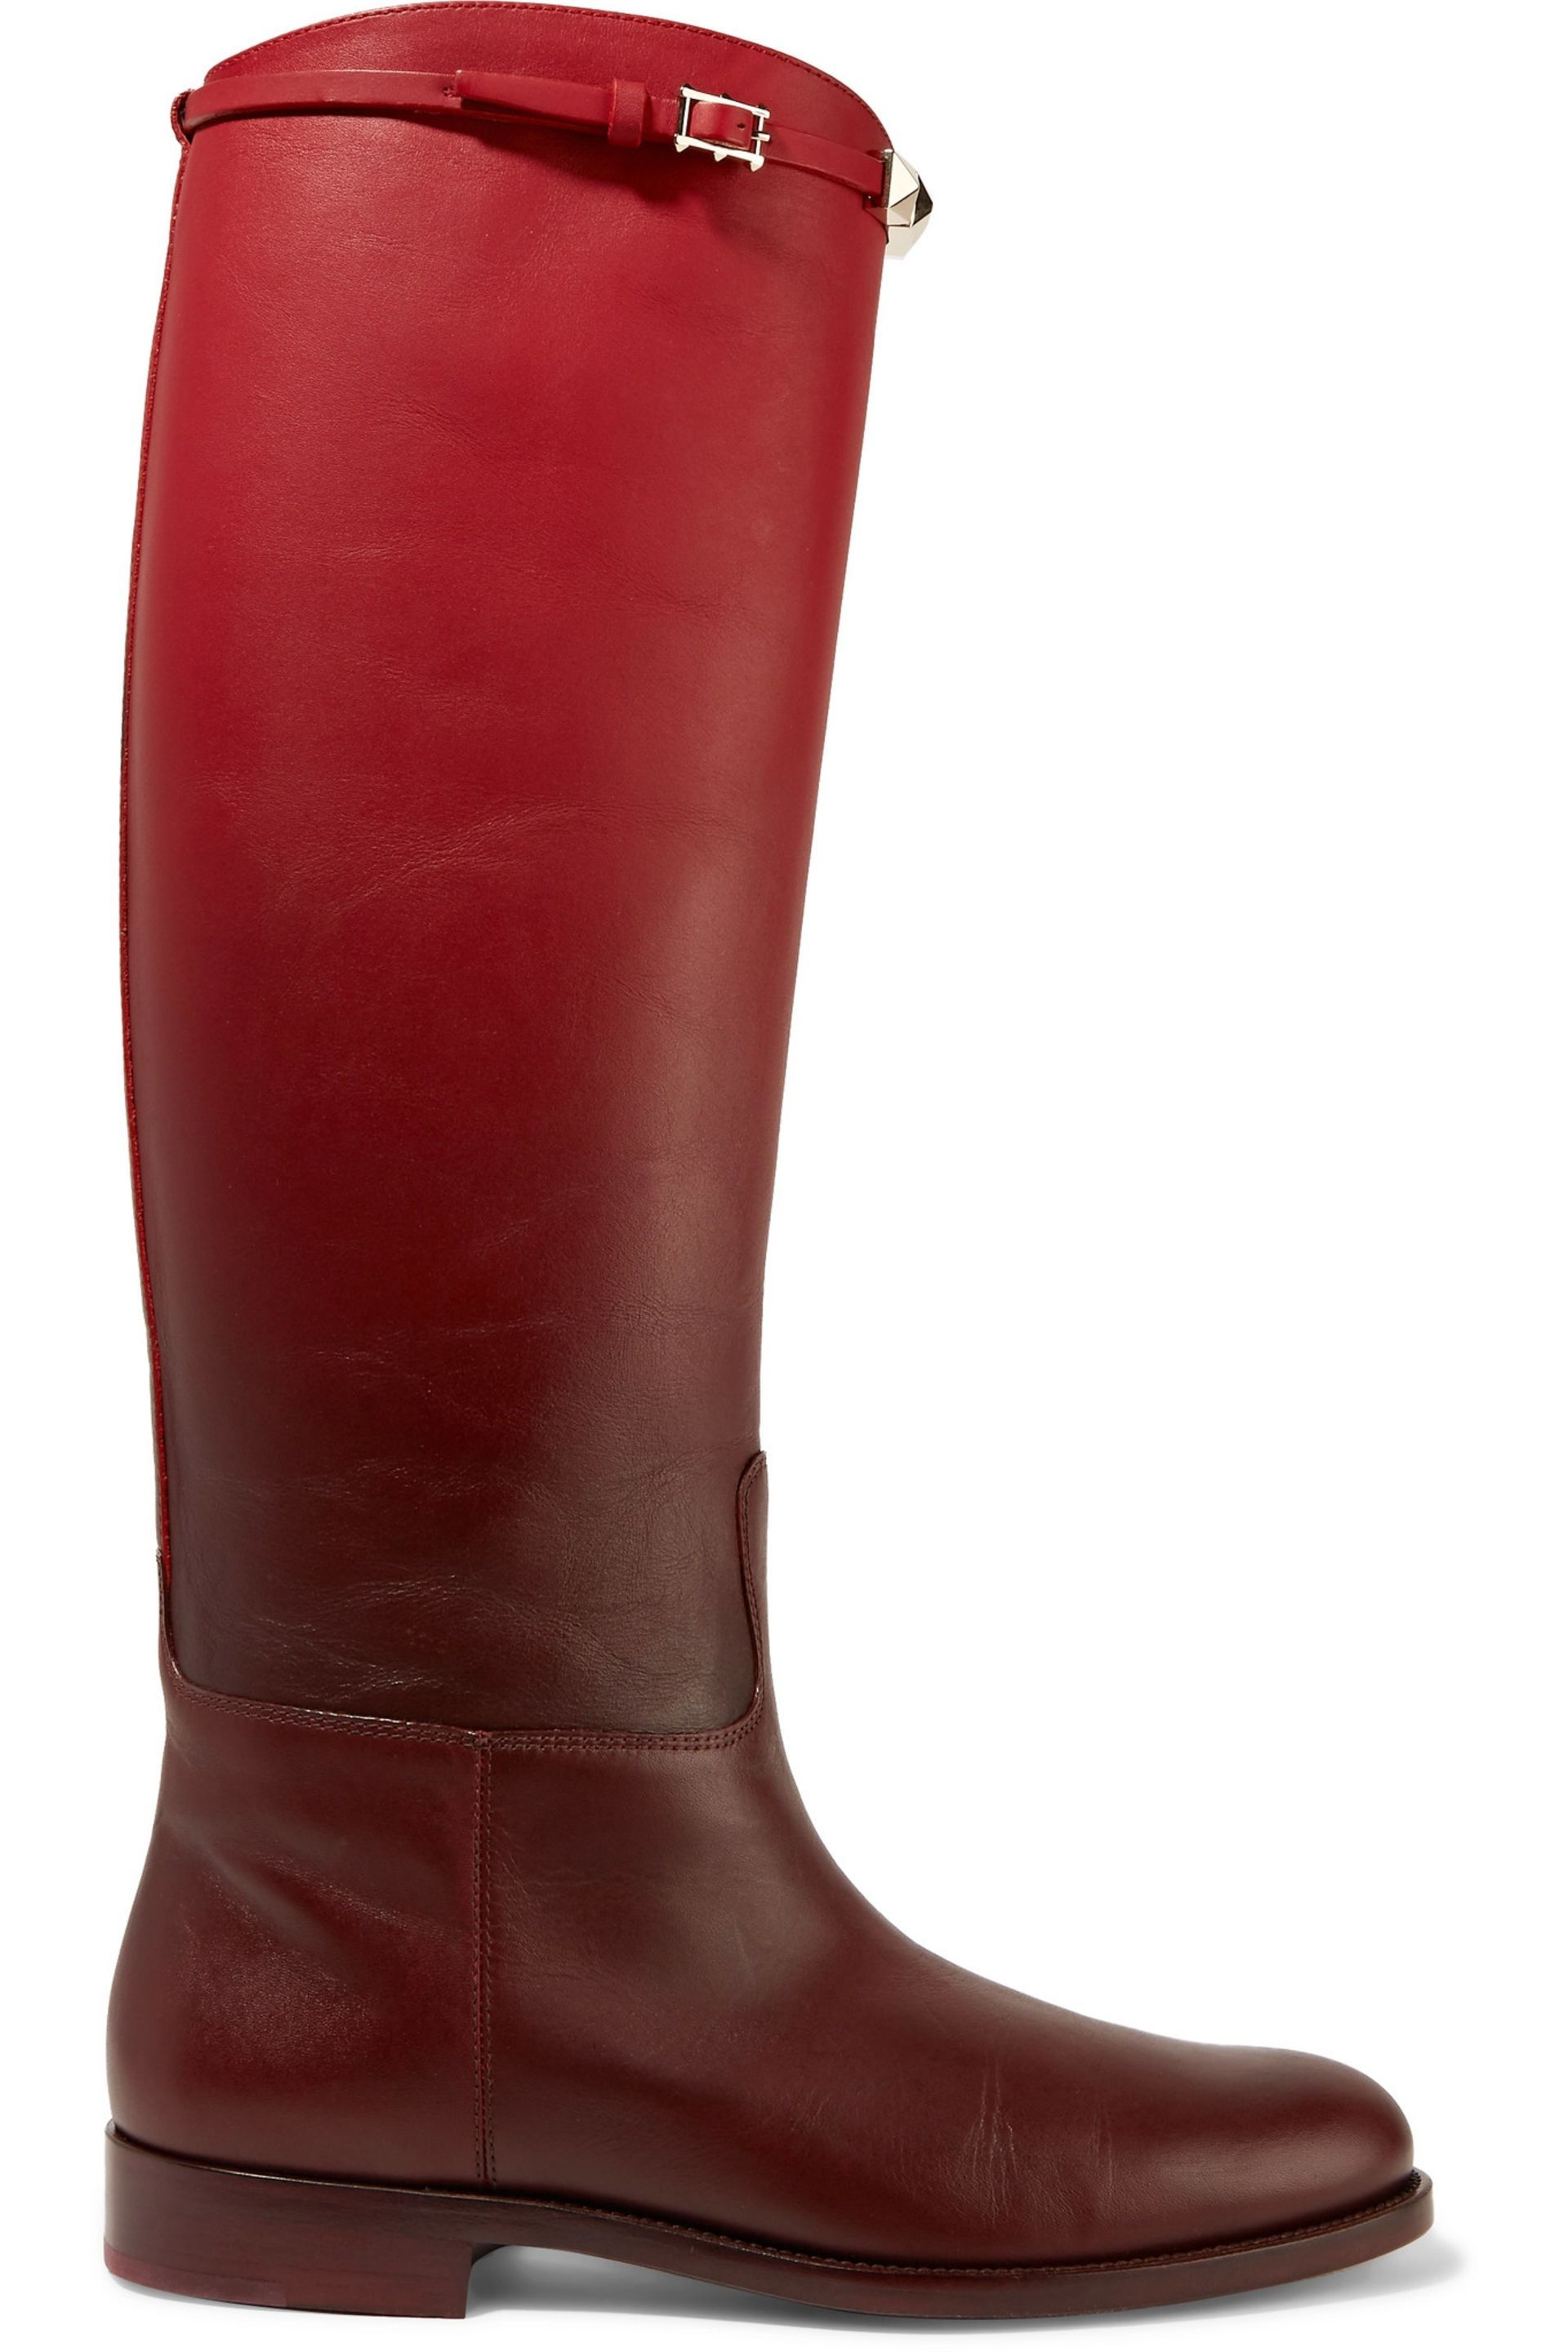 Ladies Flat Boots Sale Up To 70 Off At The Outnet Leather Knee Boots Womens Boots Flat Boots